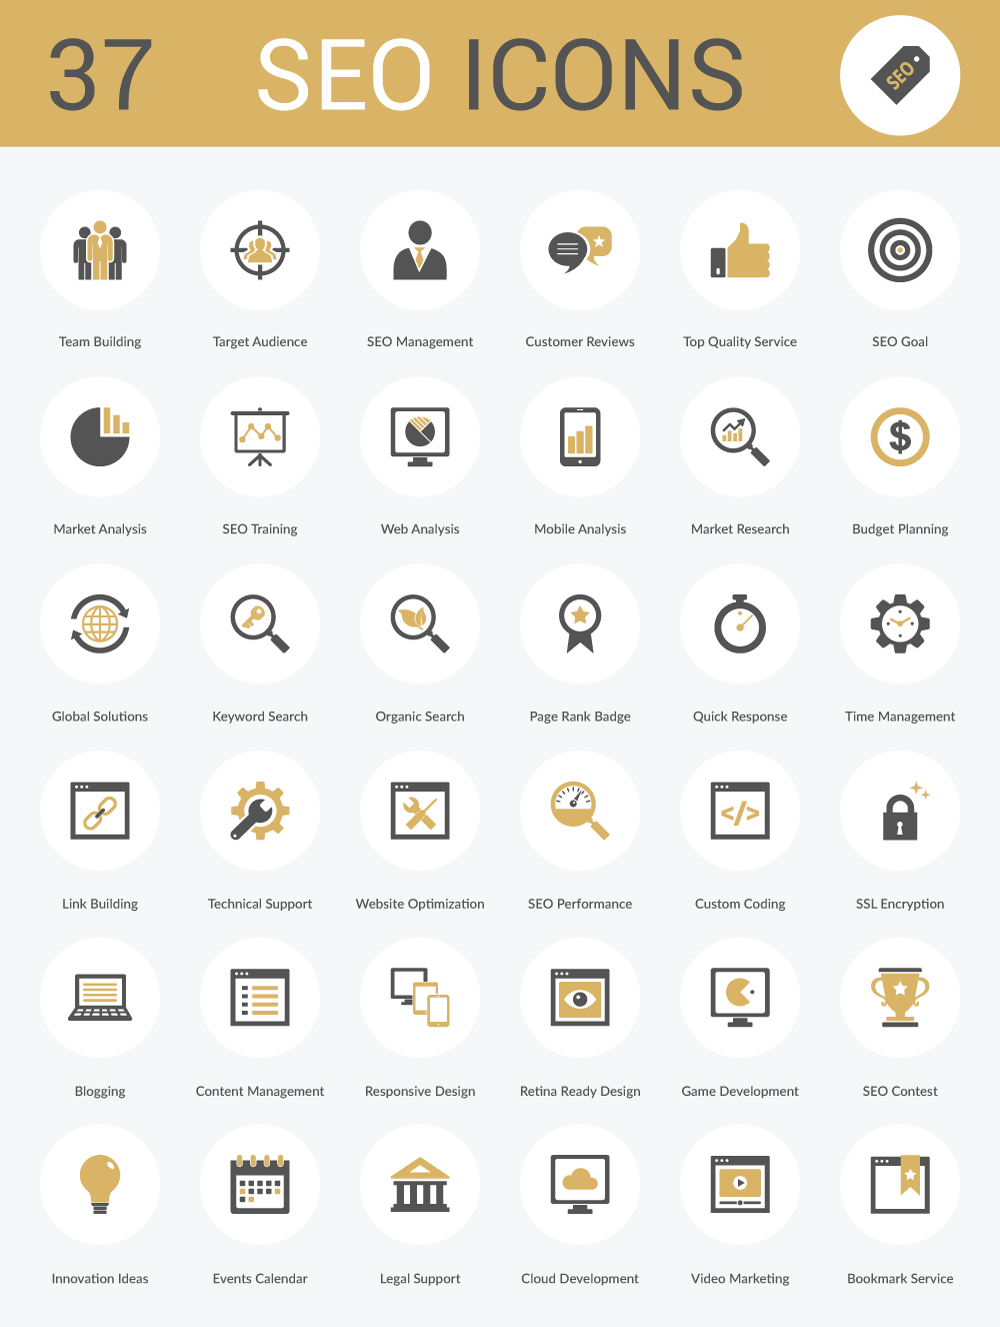 37 Free SEO Icons (AI, EPS, SVG and PNG).